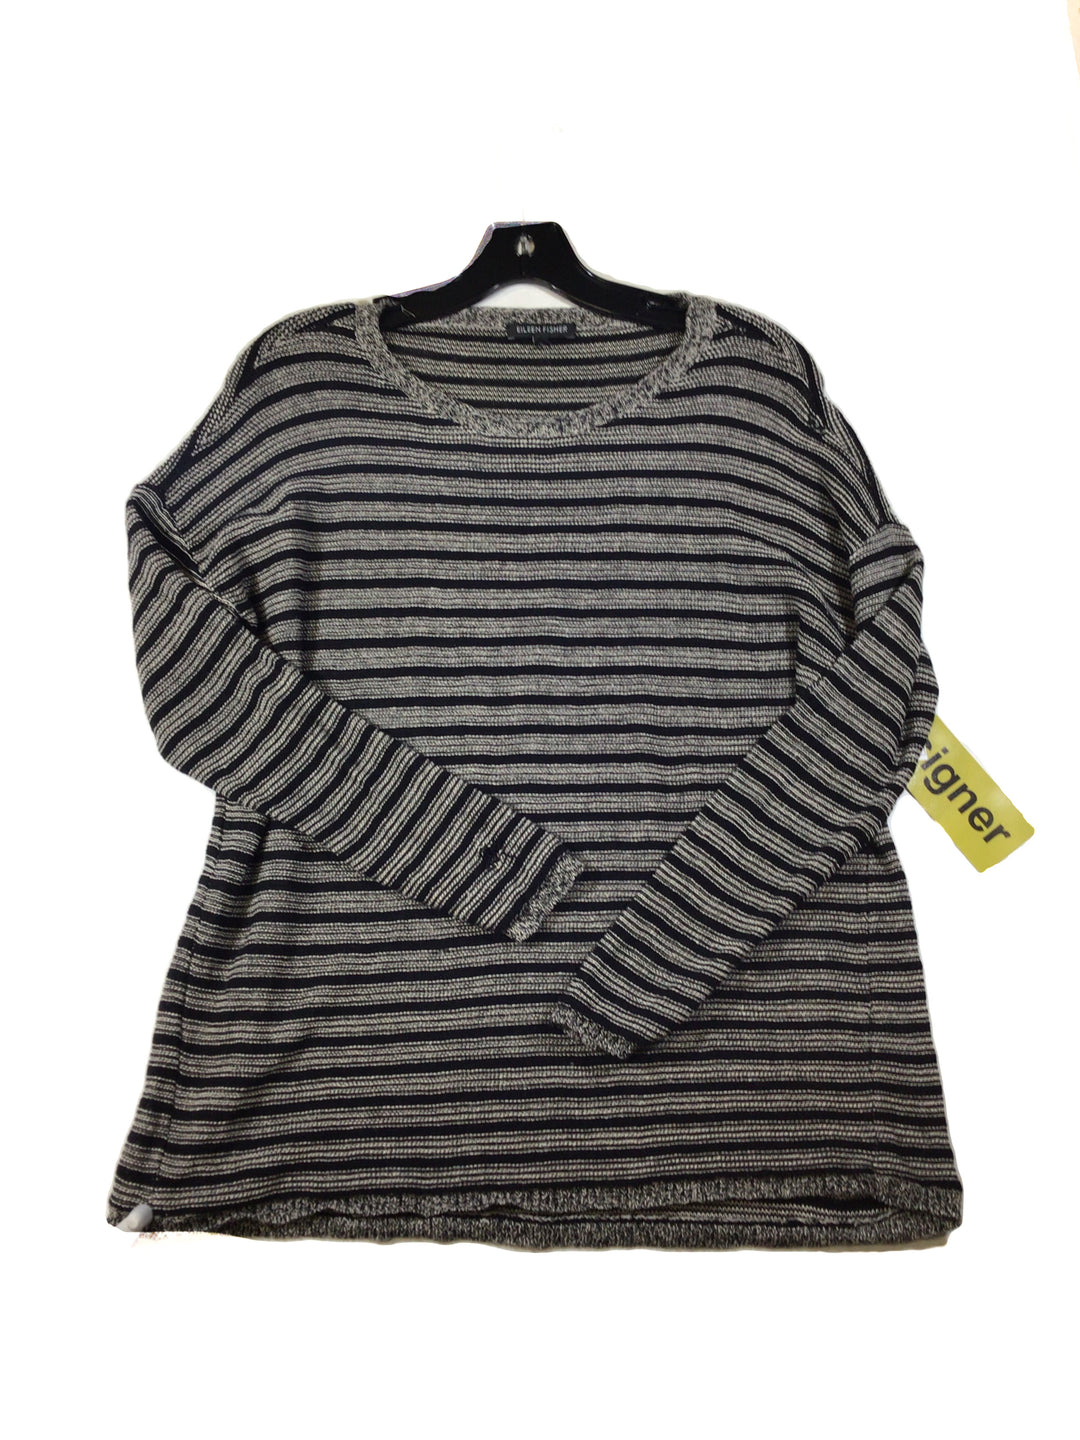 Primary Photo - BRAND: EILEEN FISHER <BR>STYLE: TOP LONG SLEEVE <BR>COLOR: STRIPED <BR>SIZE: XS <BR>SKU: 213-21394-41275